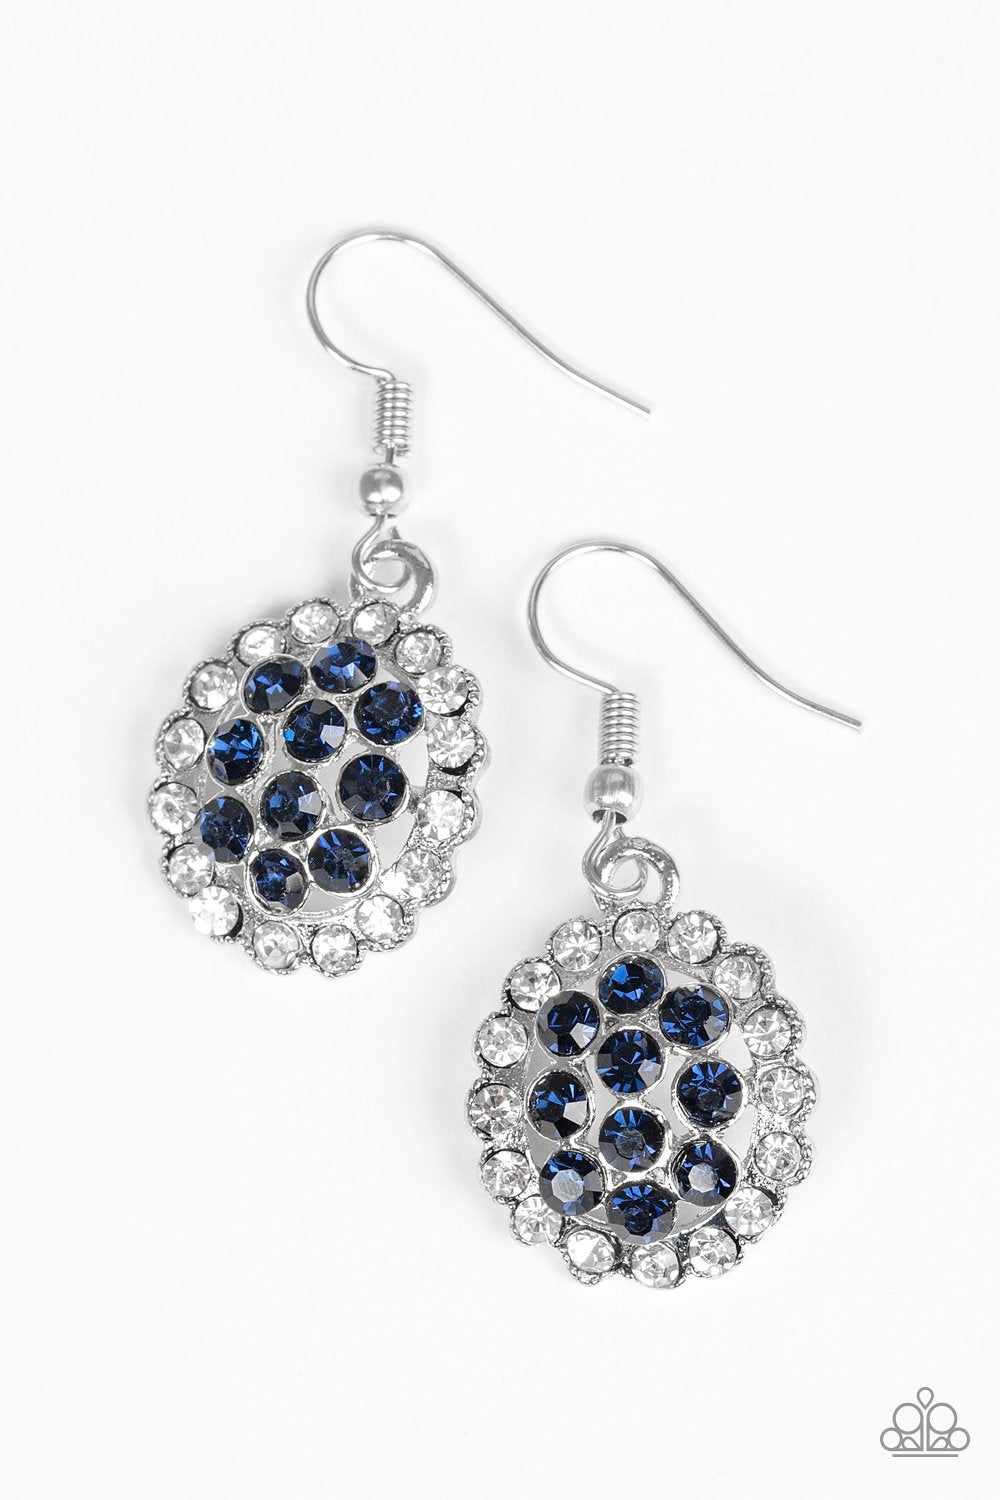 Paparazzi Accessories ~ Runway Ready - Blue